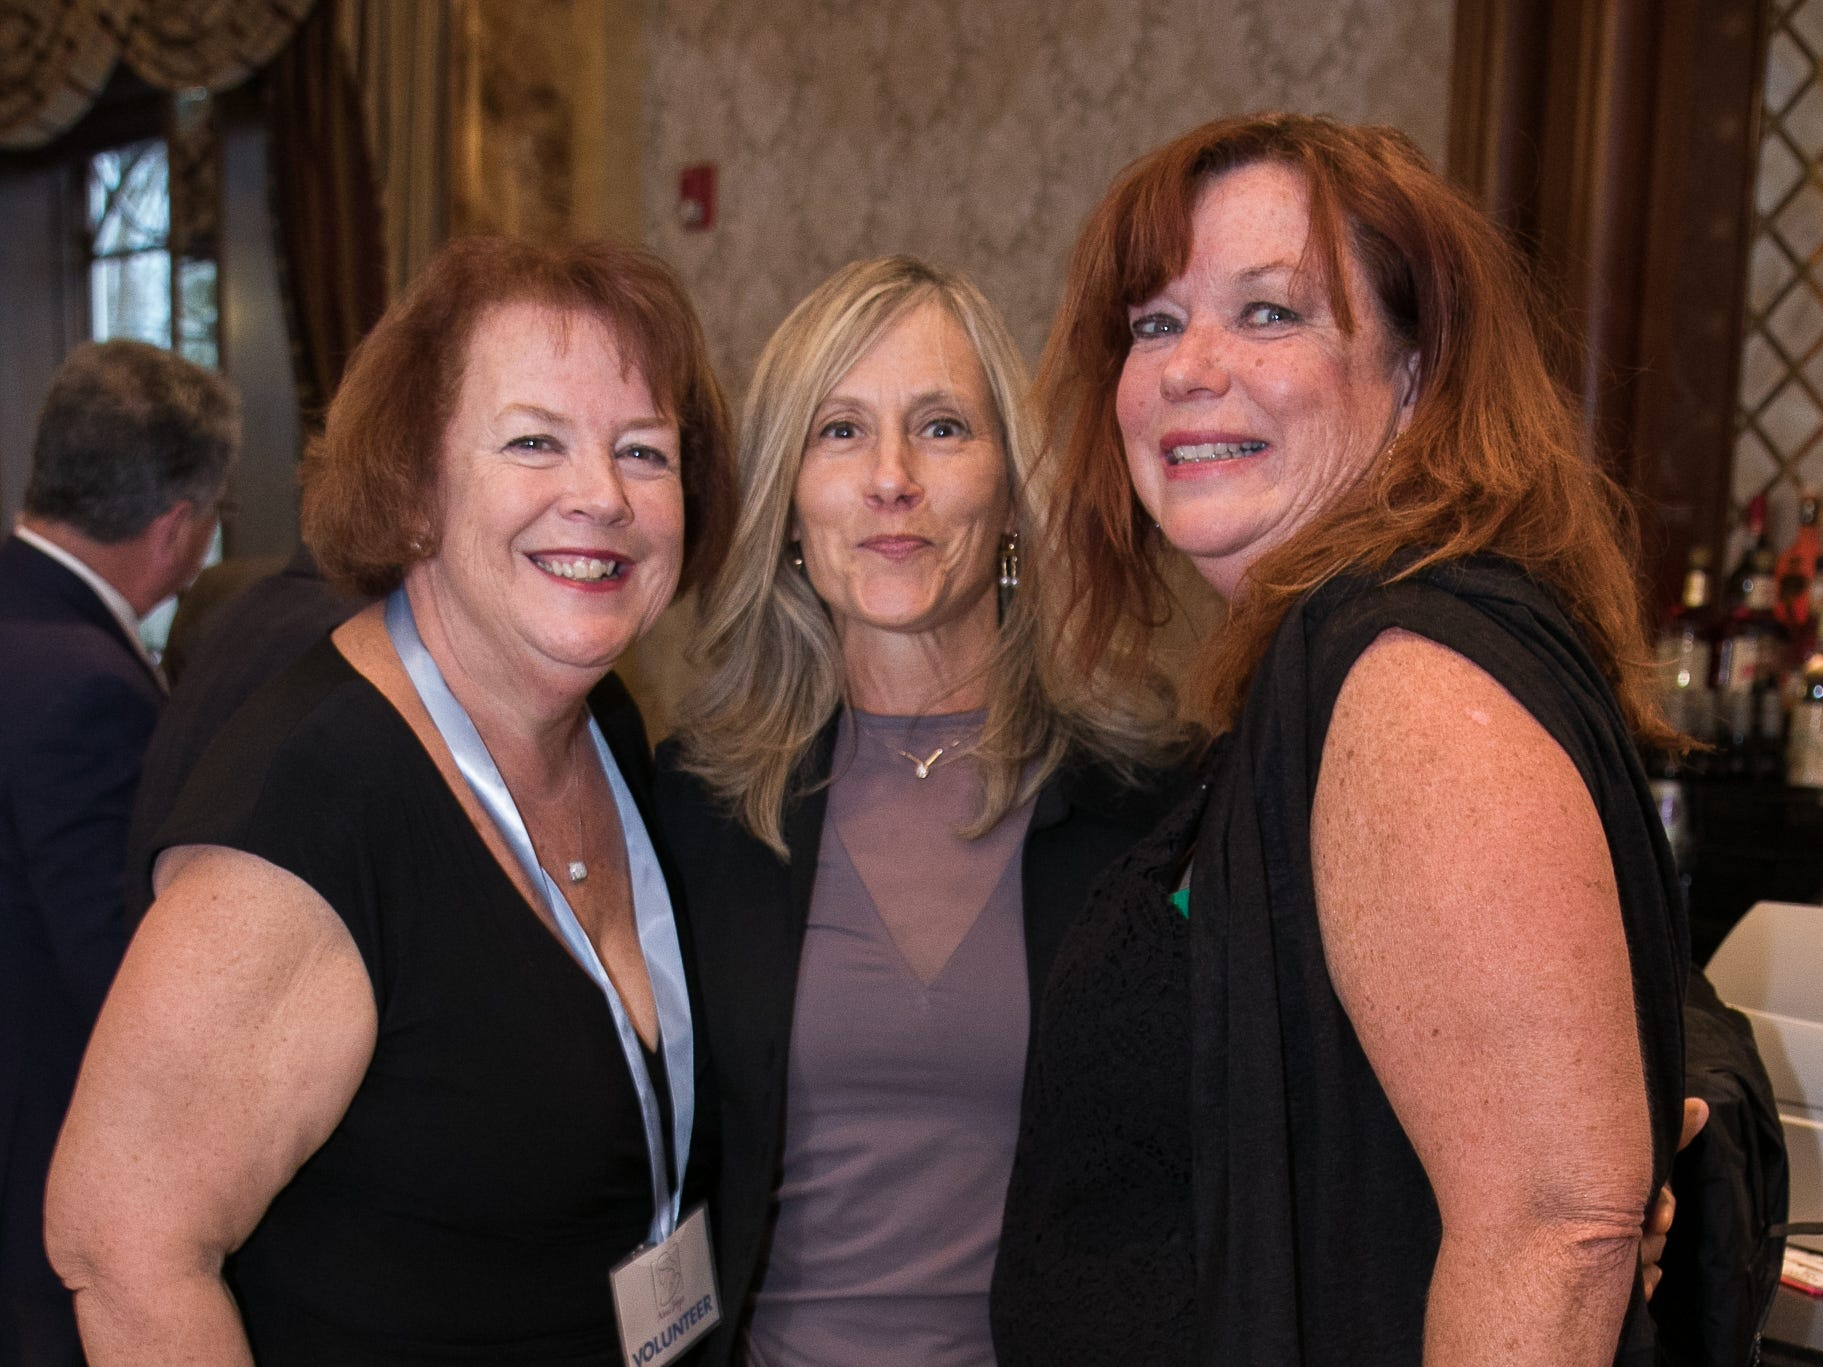 Margie Doyle, Helena Chateau, Dot Falco. New Hope, a Pregnancy Resource Center, held their annual gala at Seasons in Washington Township. 04/05/2019